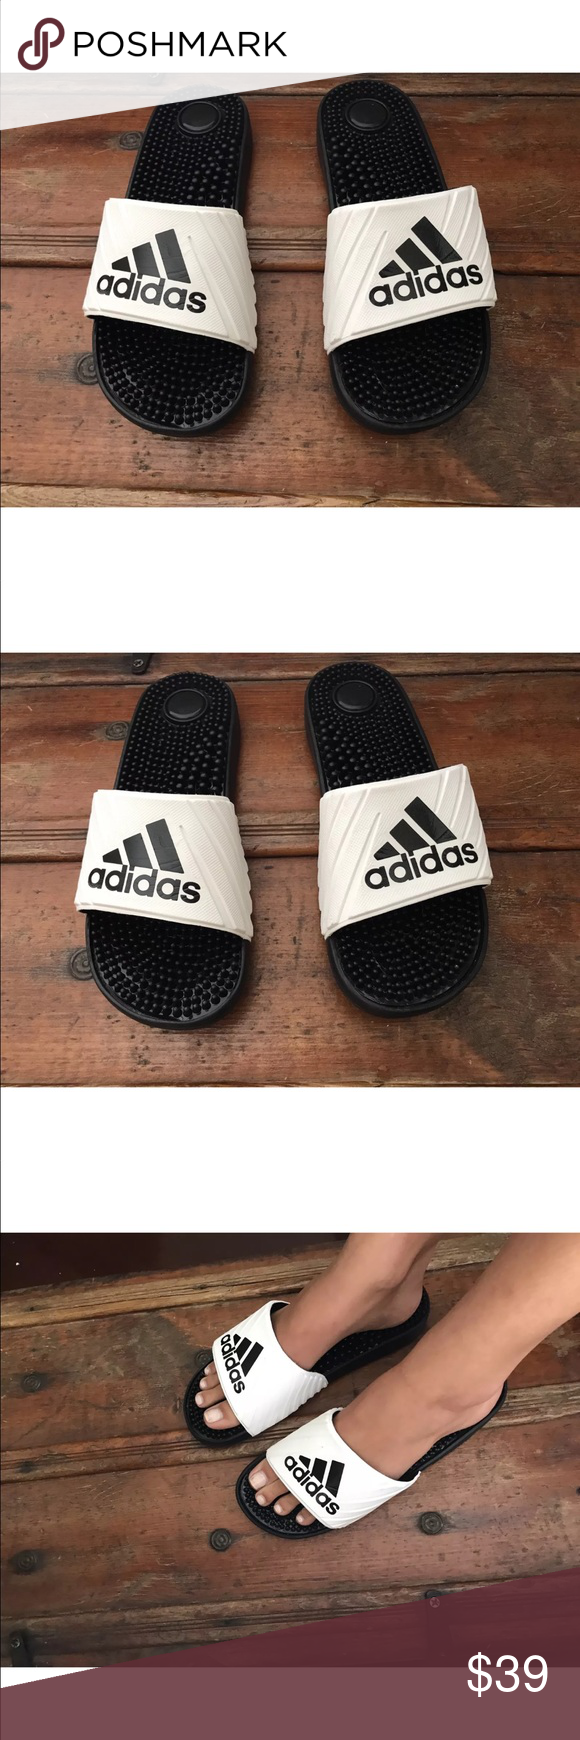 1b8be77d49a2 NEW adidas Performance Women s Voloossage Slides 8 No tags